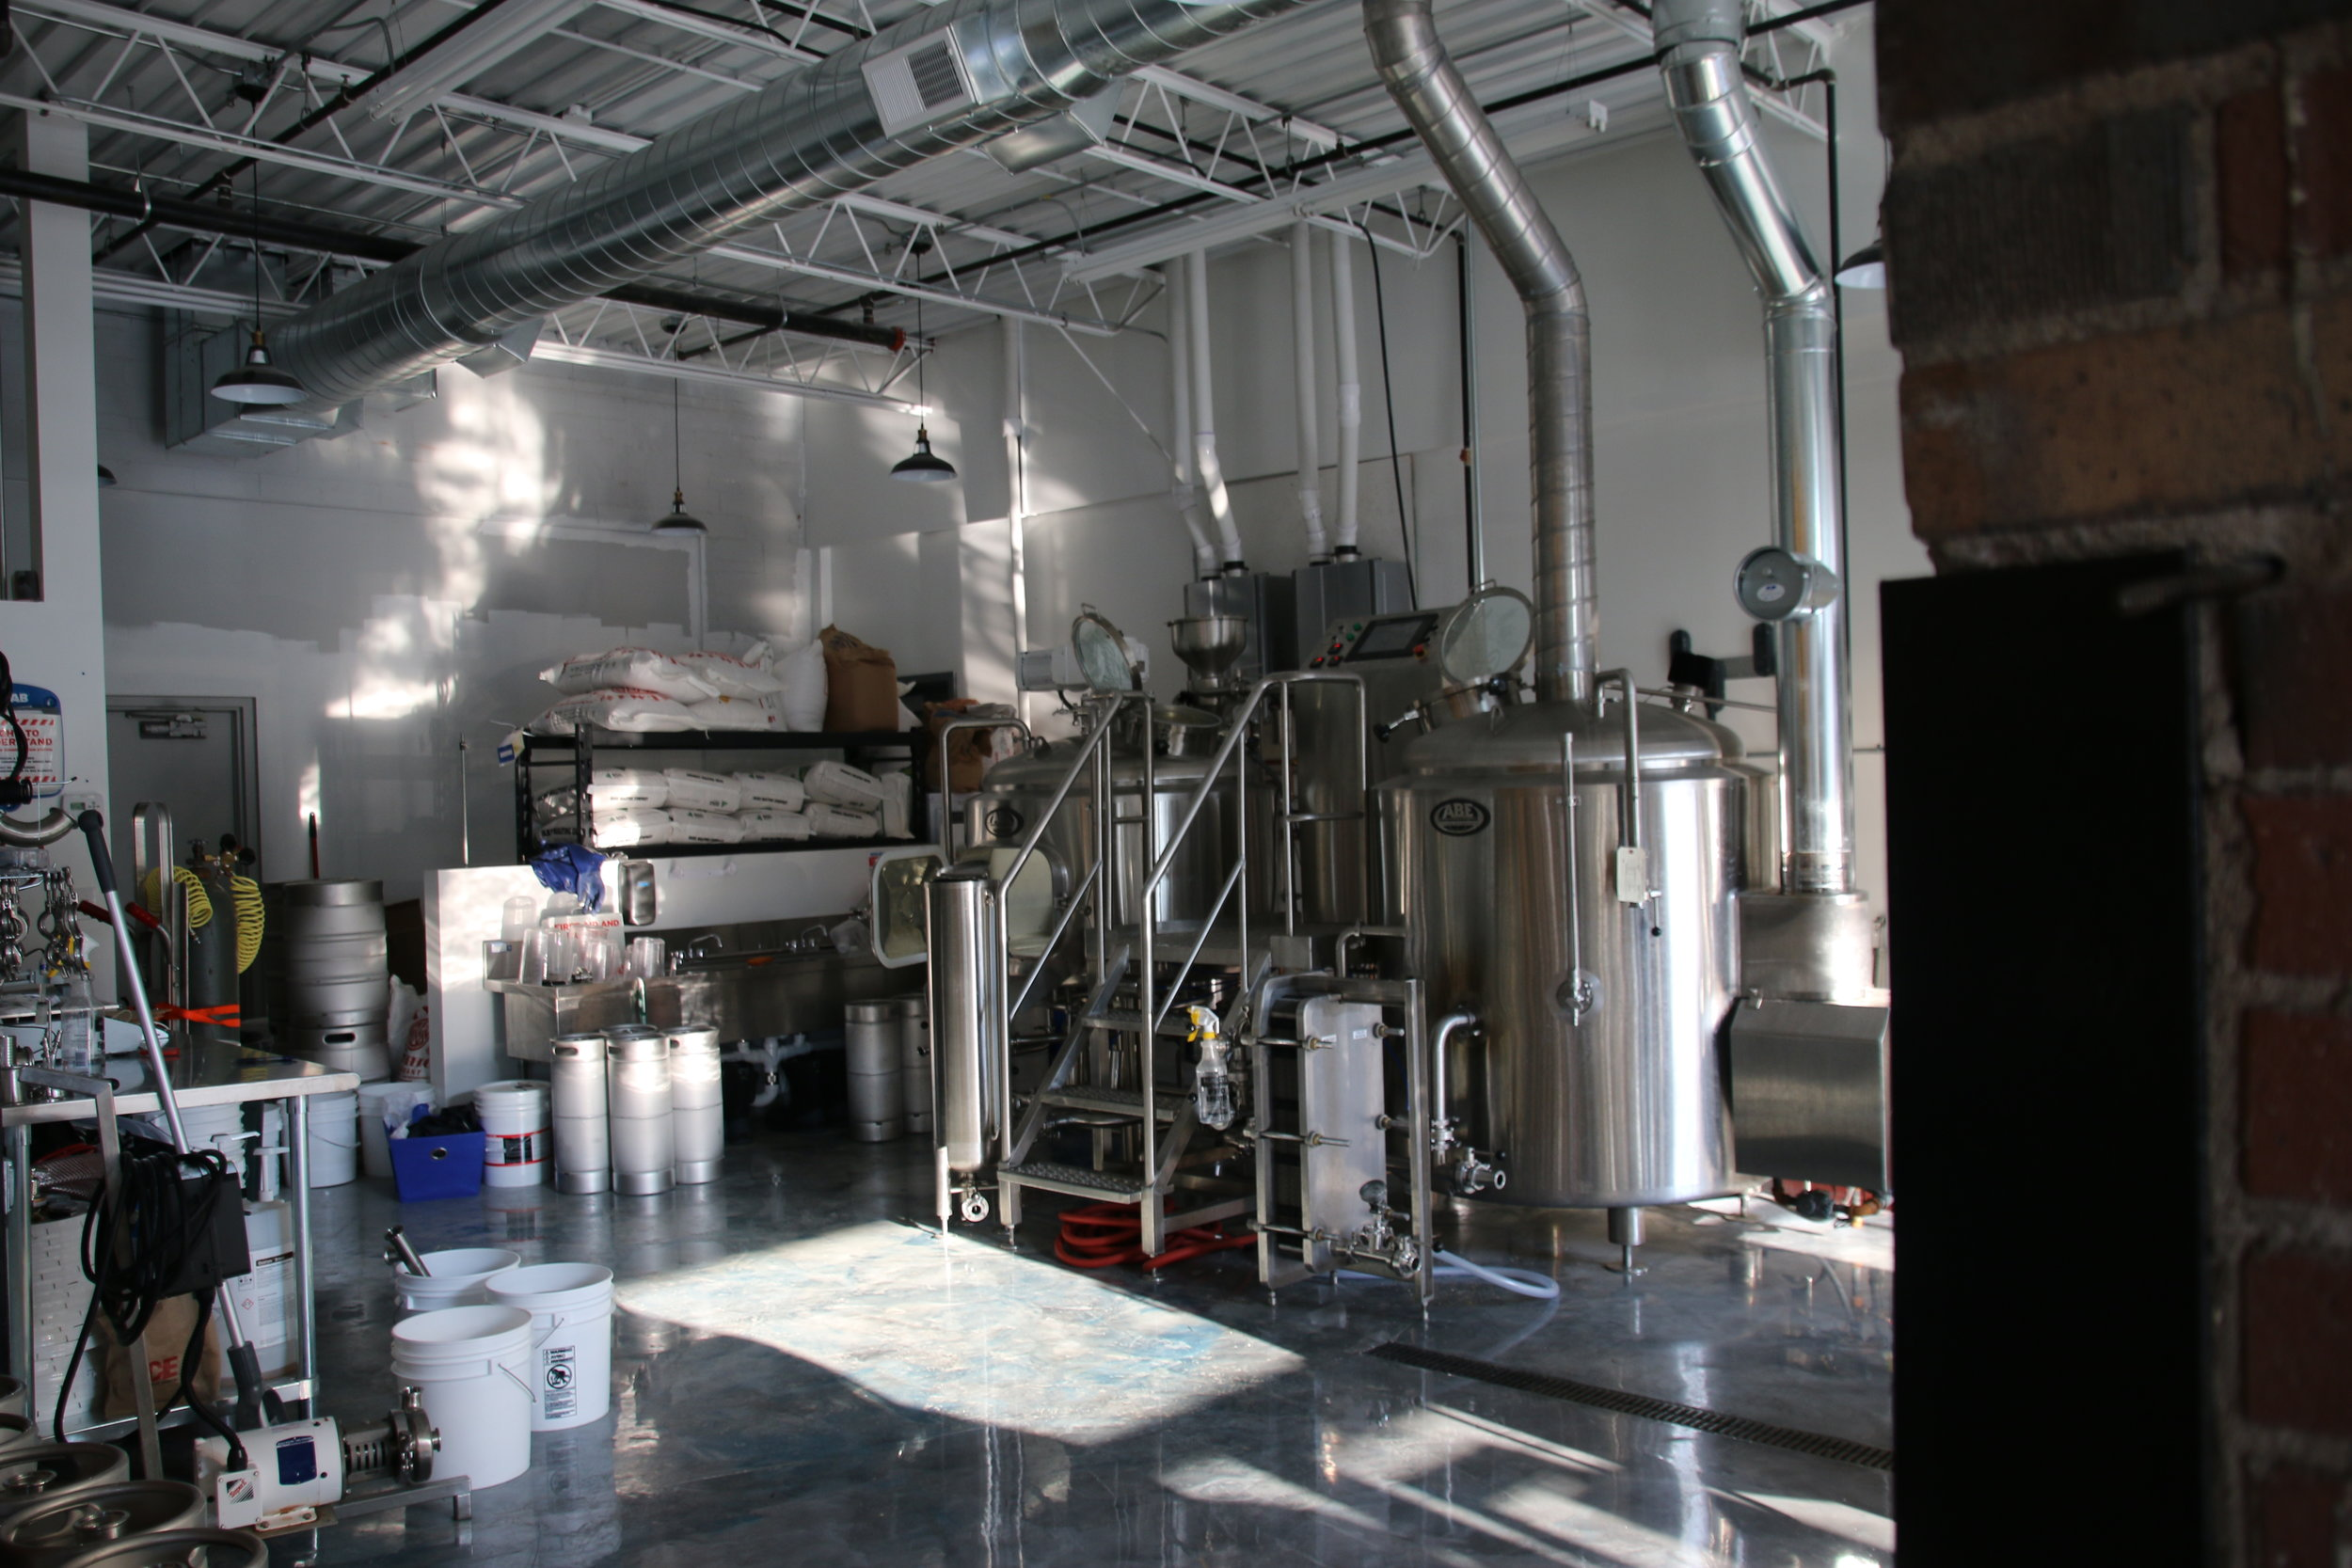 Brewery space. What a gorgeous view.